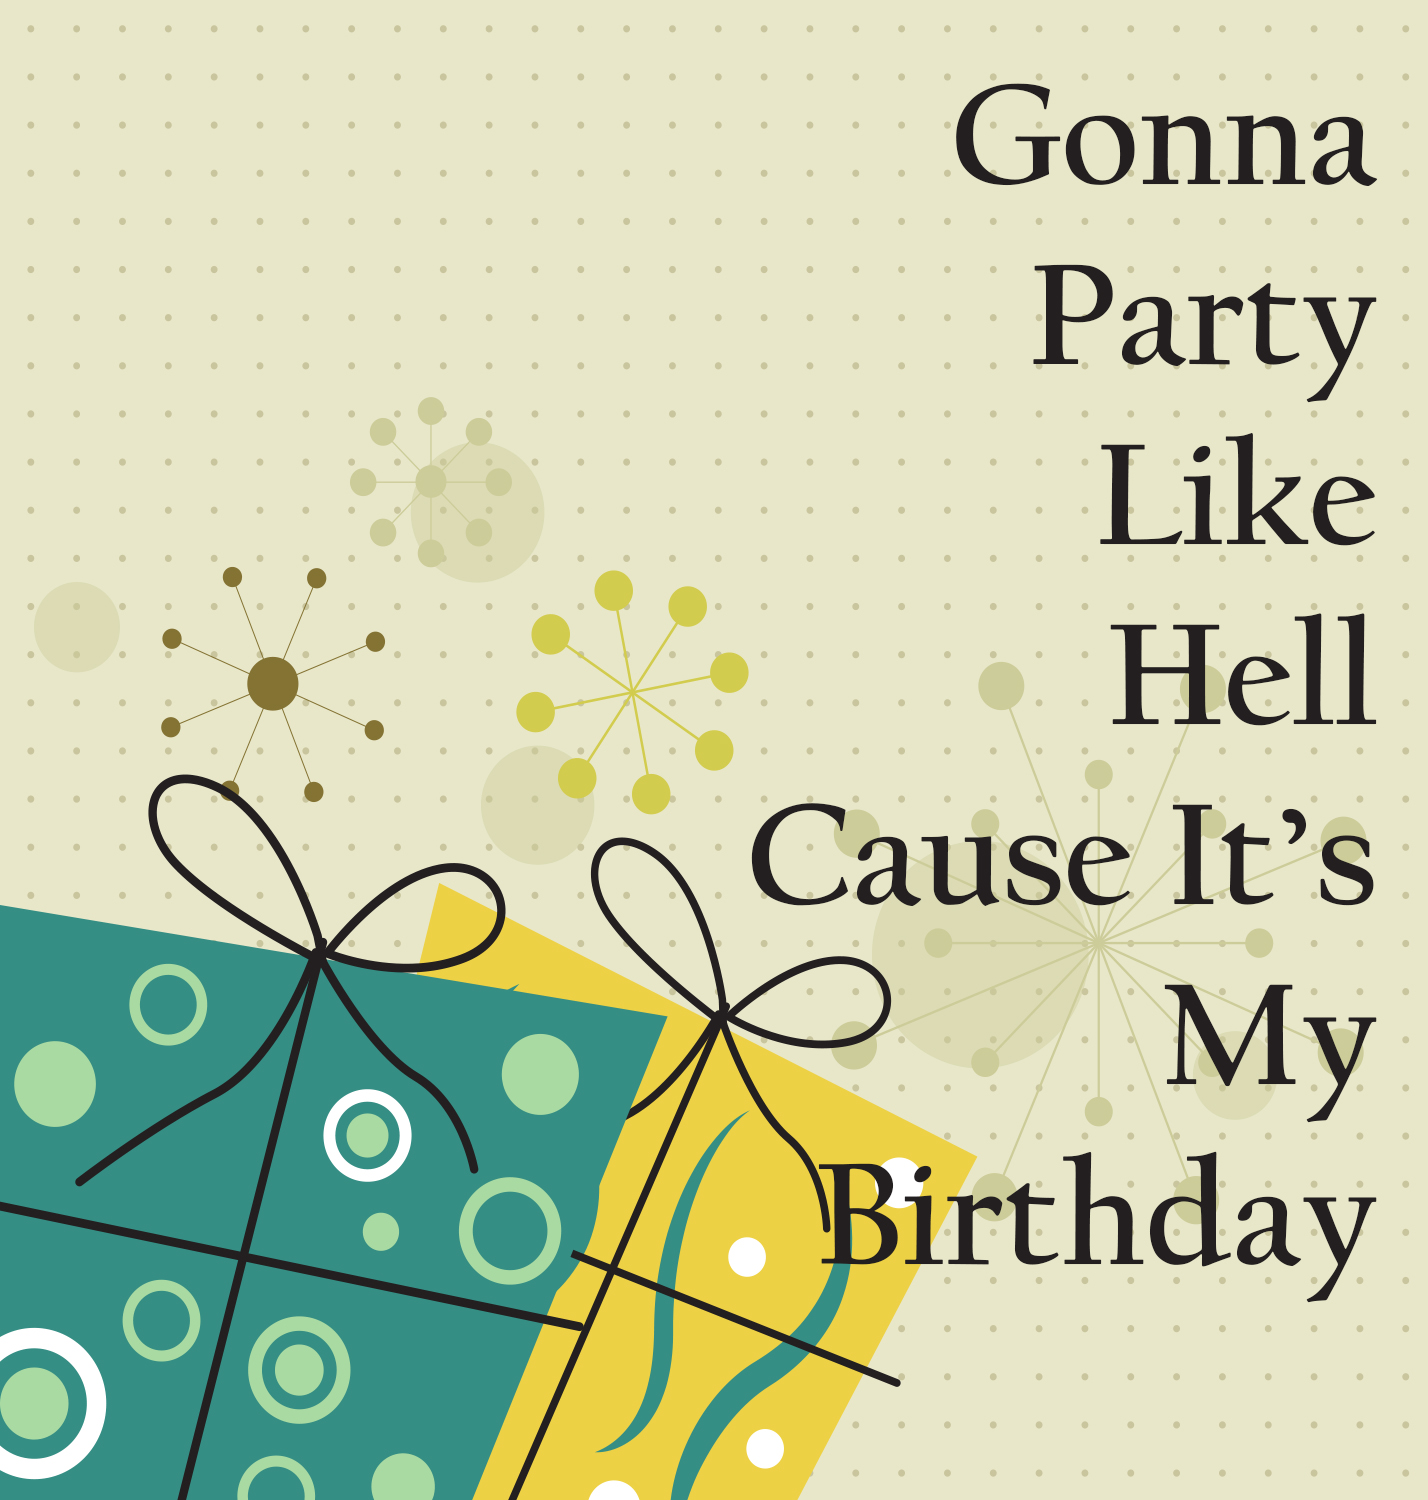 Happy Birthday Wallpapers And Images Hd Wallpapers Rocks 1428x1500